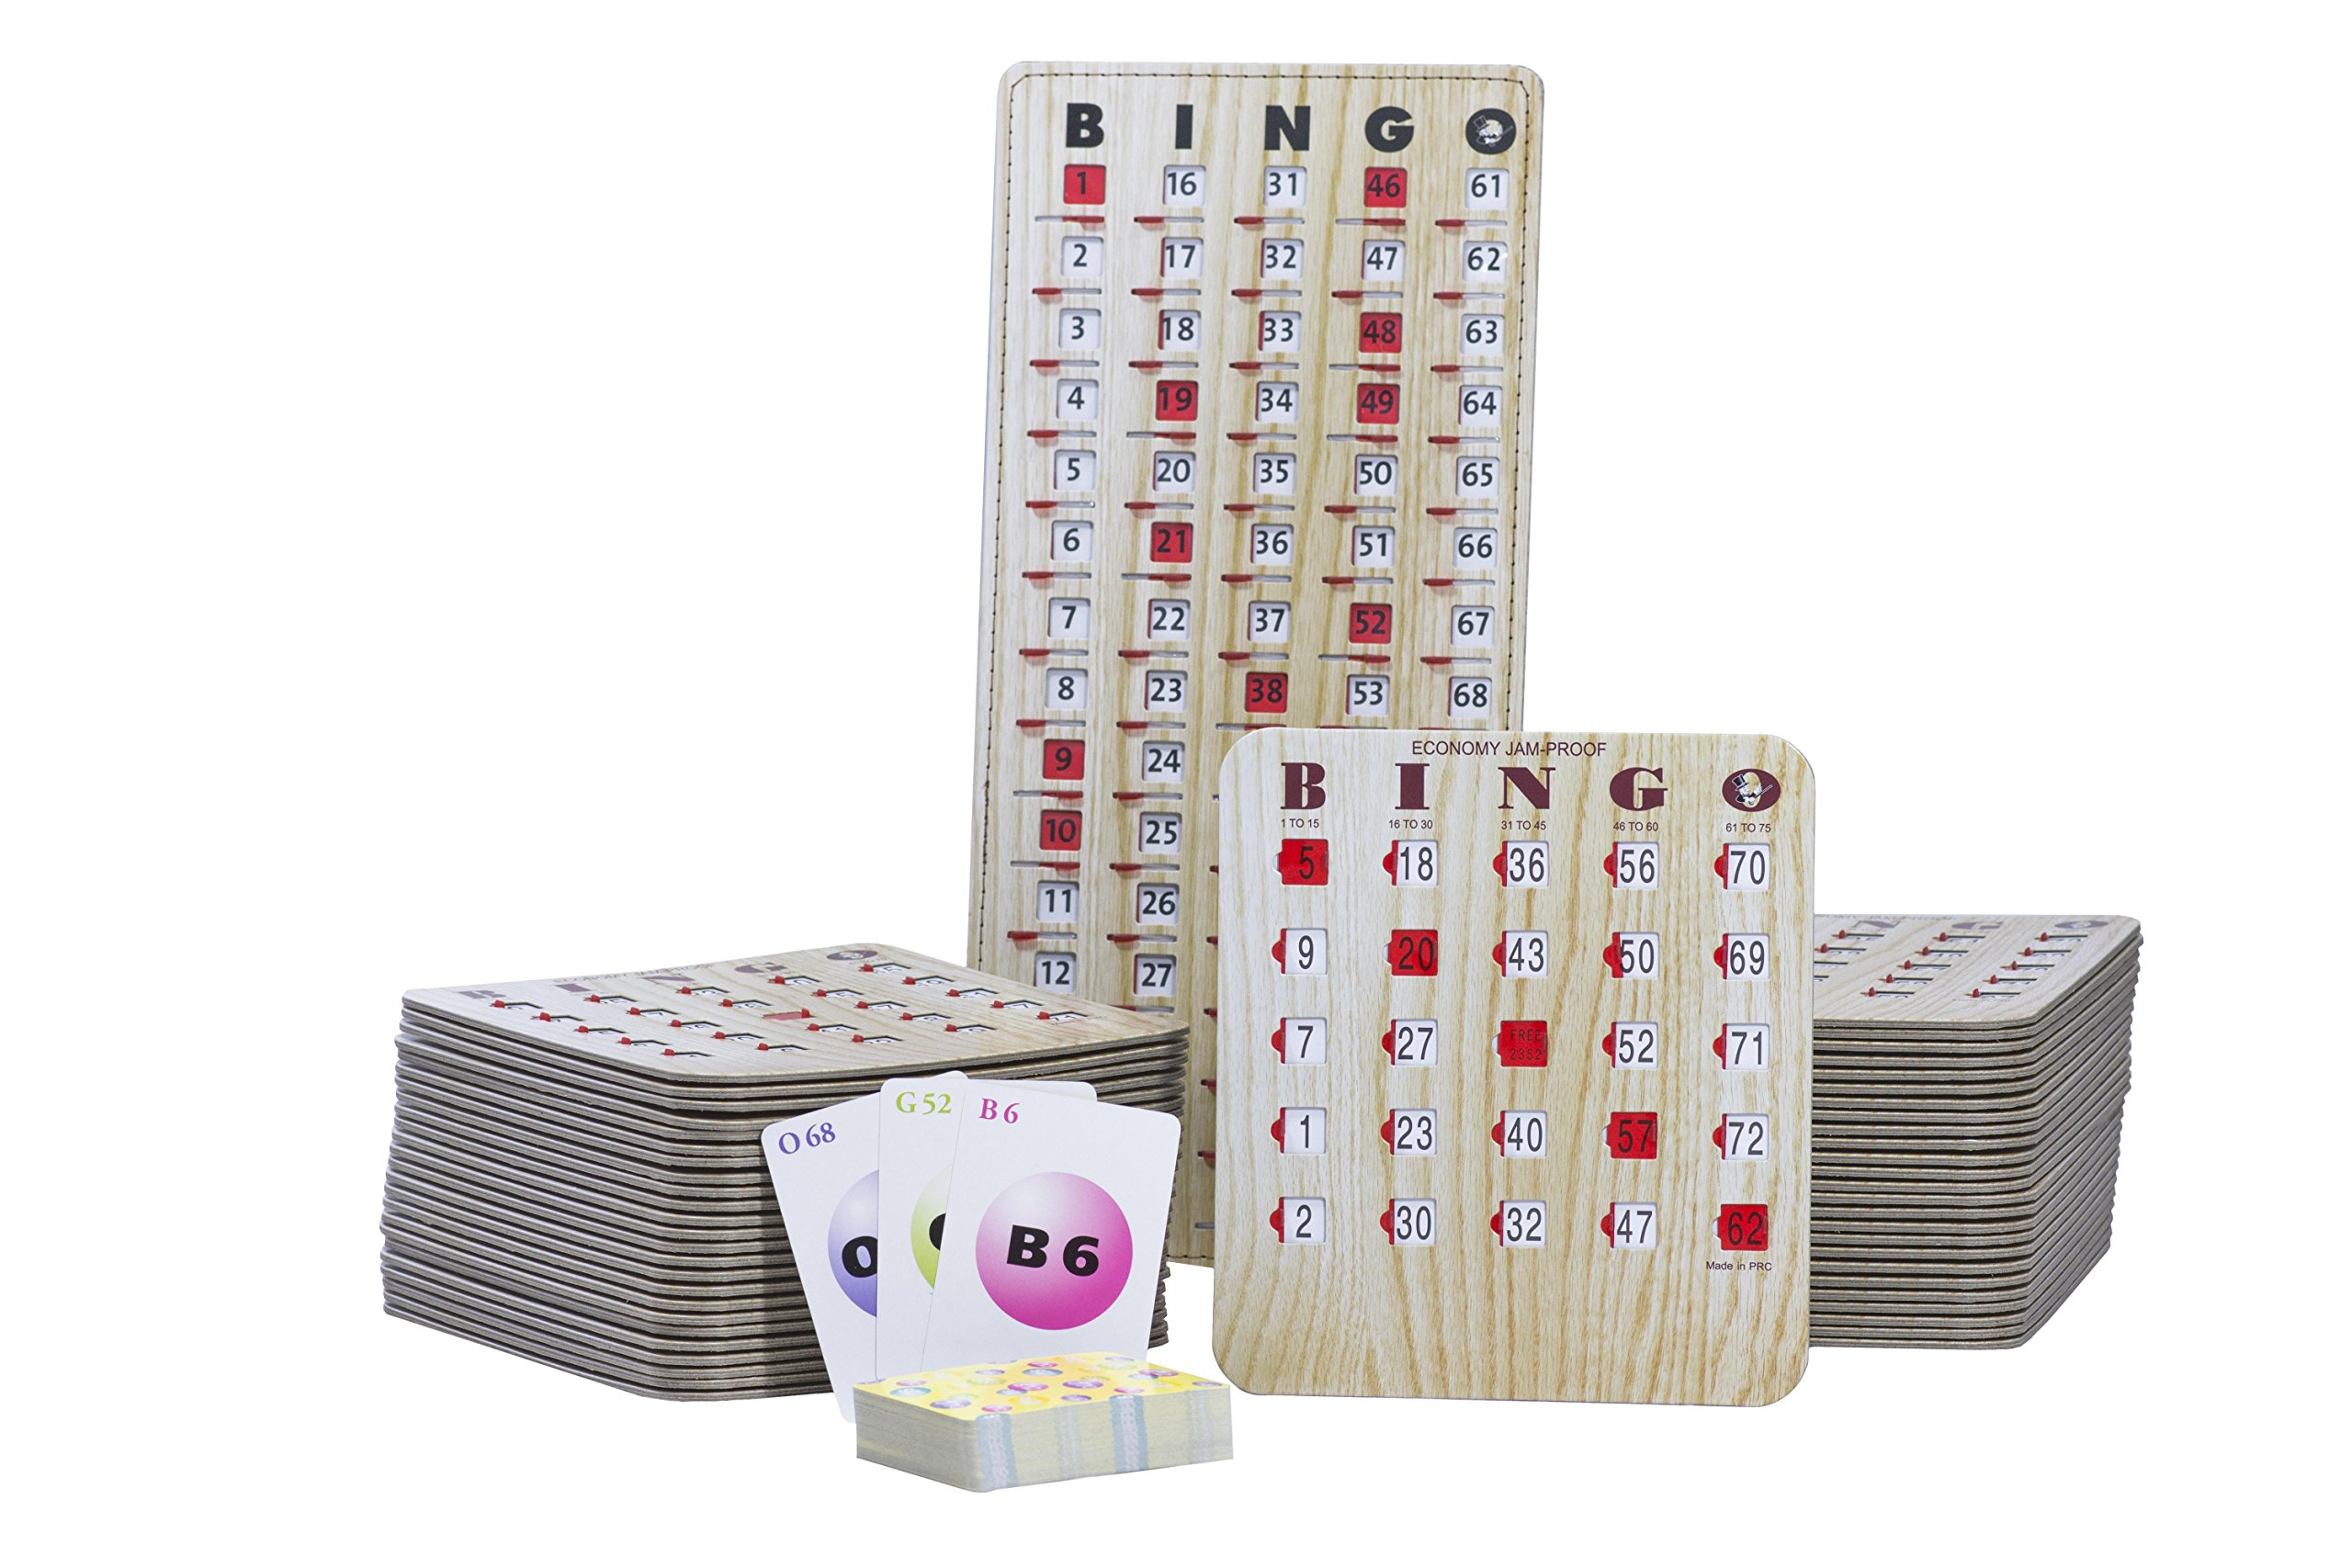 Mr. Chips Complete Bingo Game w/50 Economy JAM Proof Shutter Cards, Inc